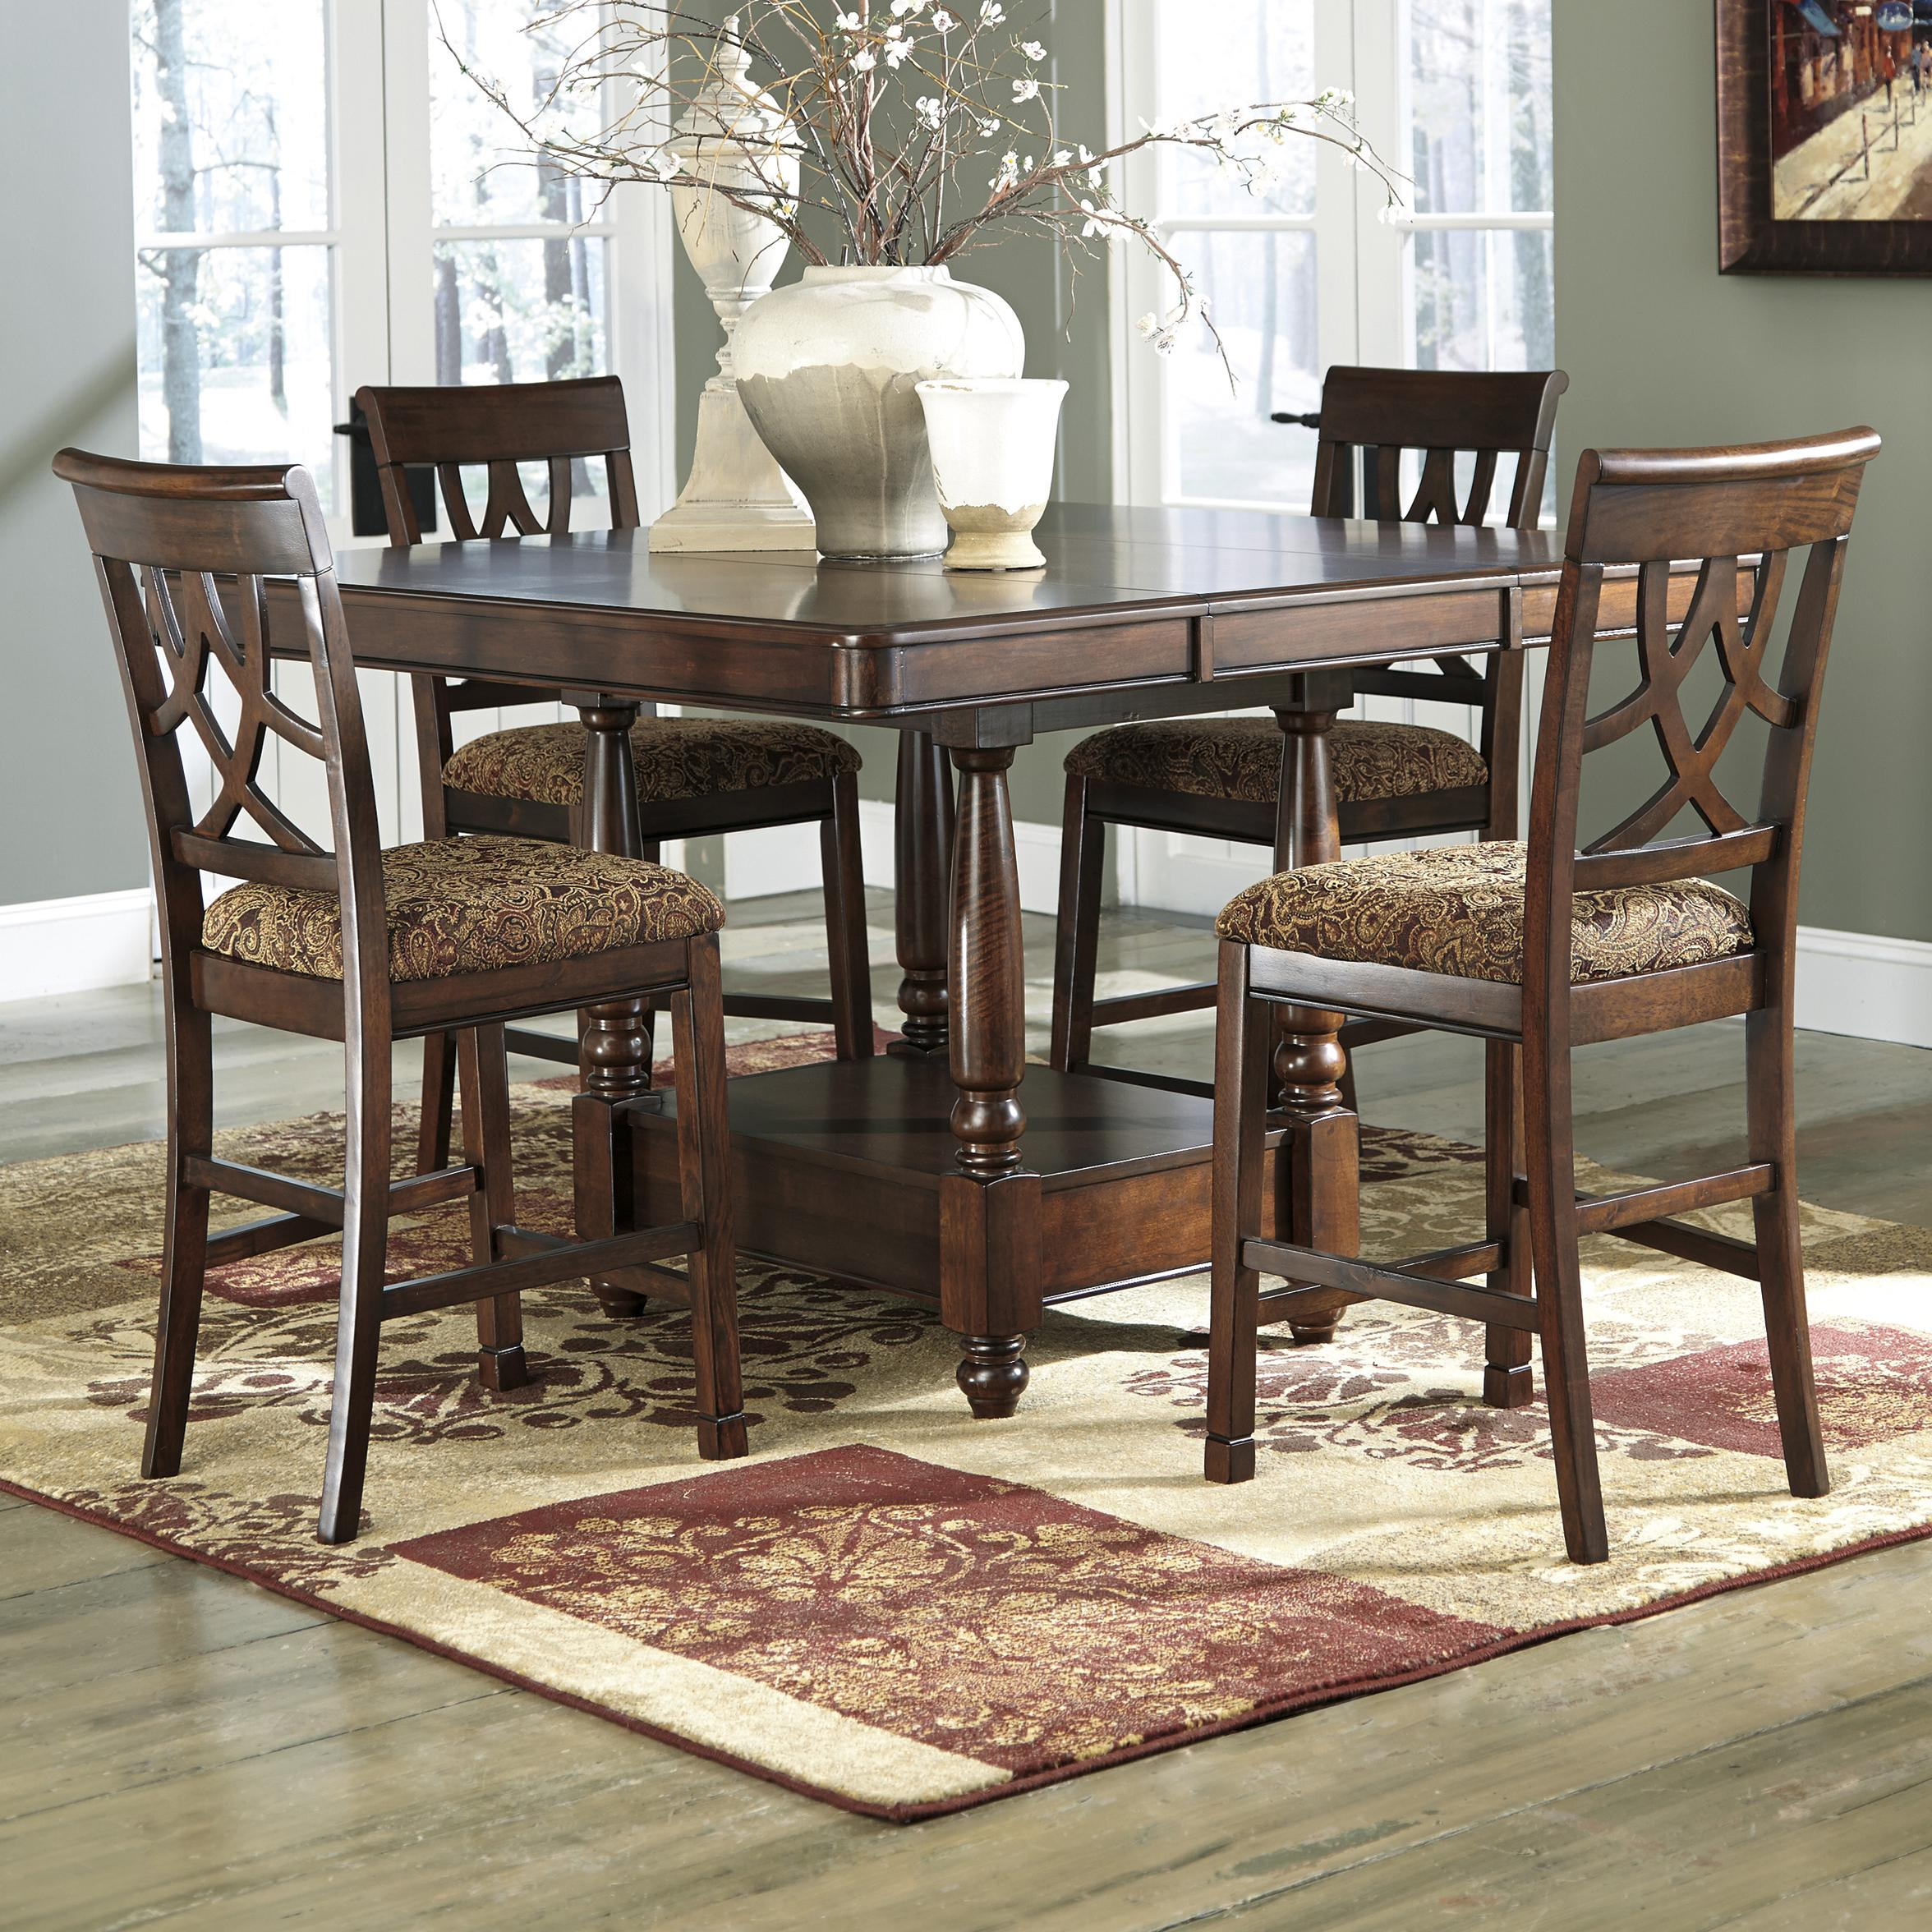 Signature design by ashley leahlyn 5 piece cherry finish counter table extension set del sol - Pub dining room sets ...